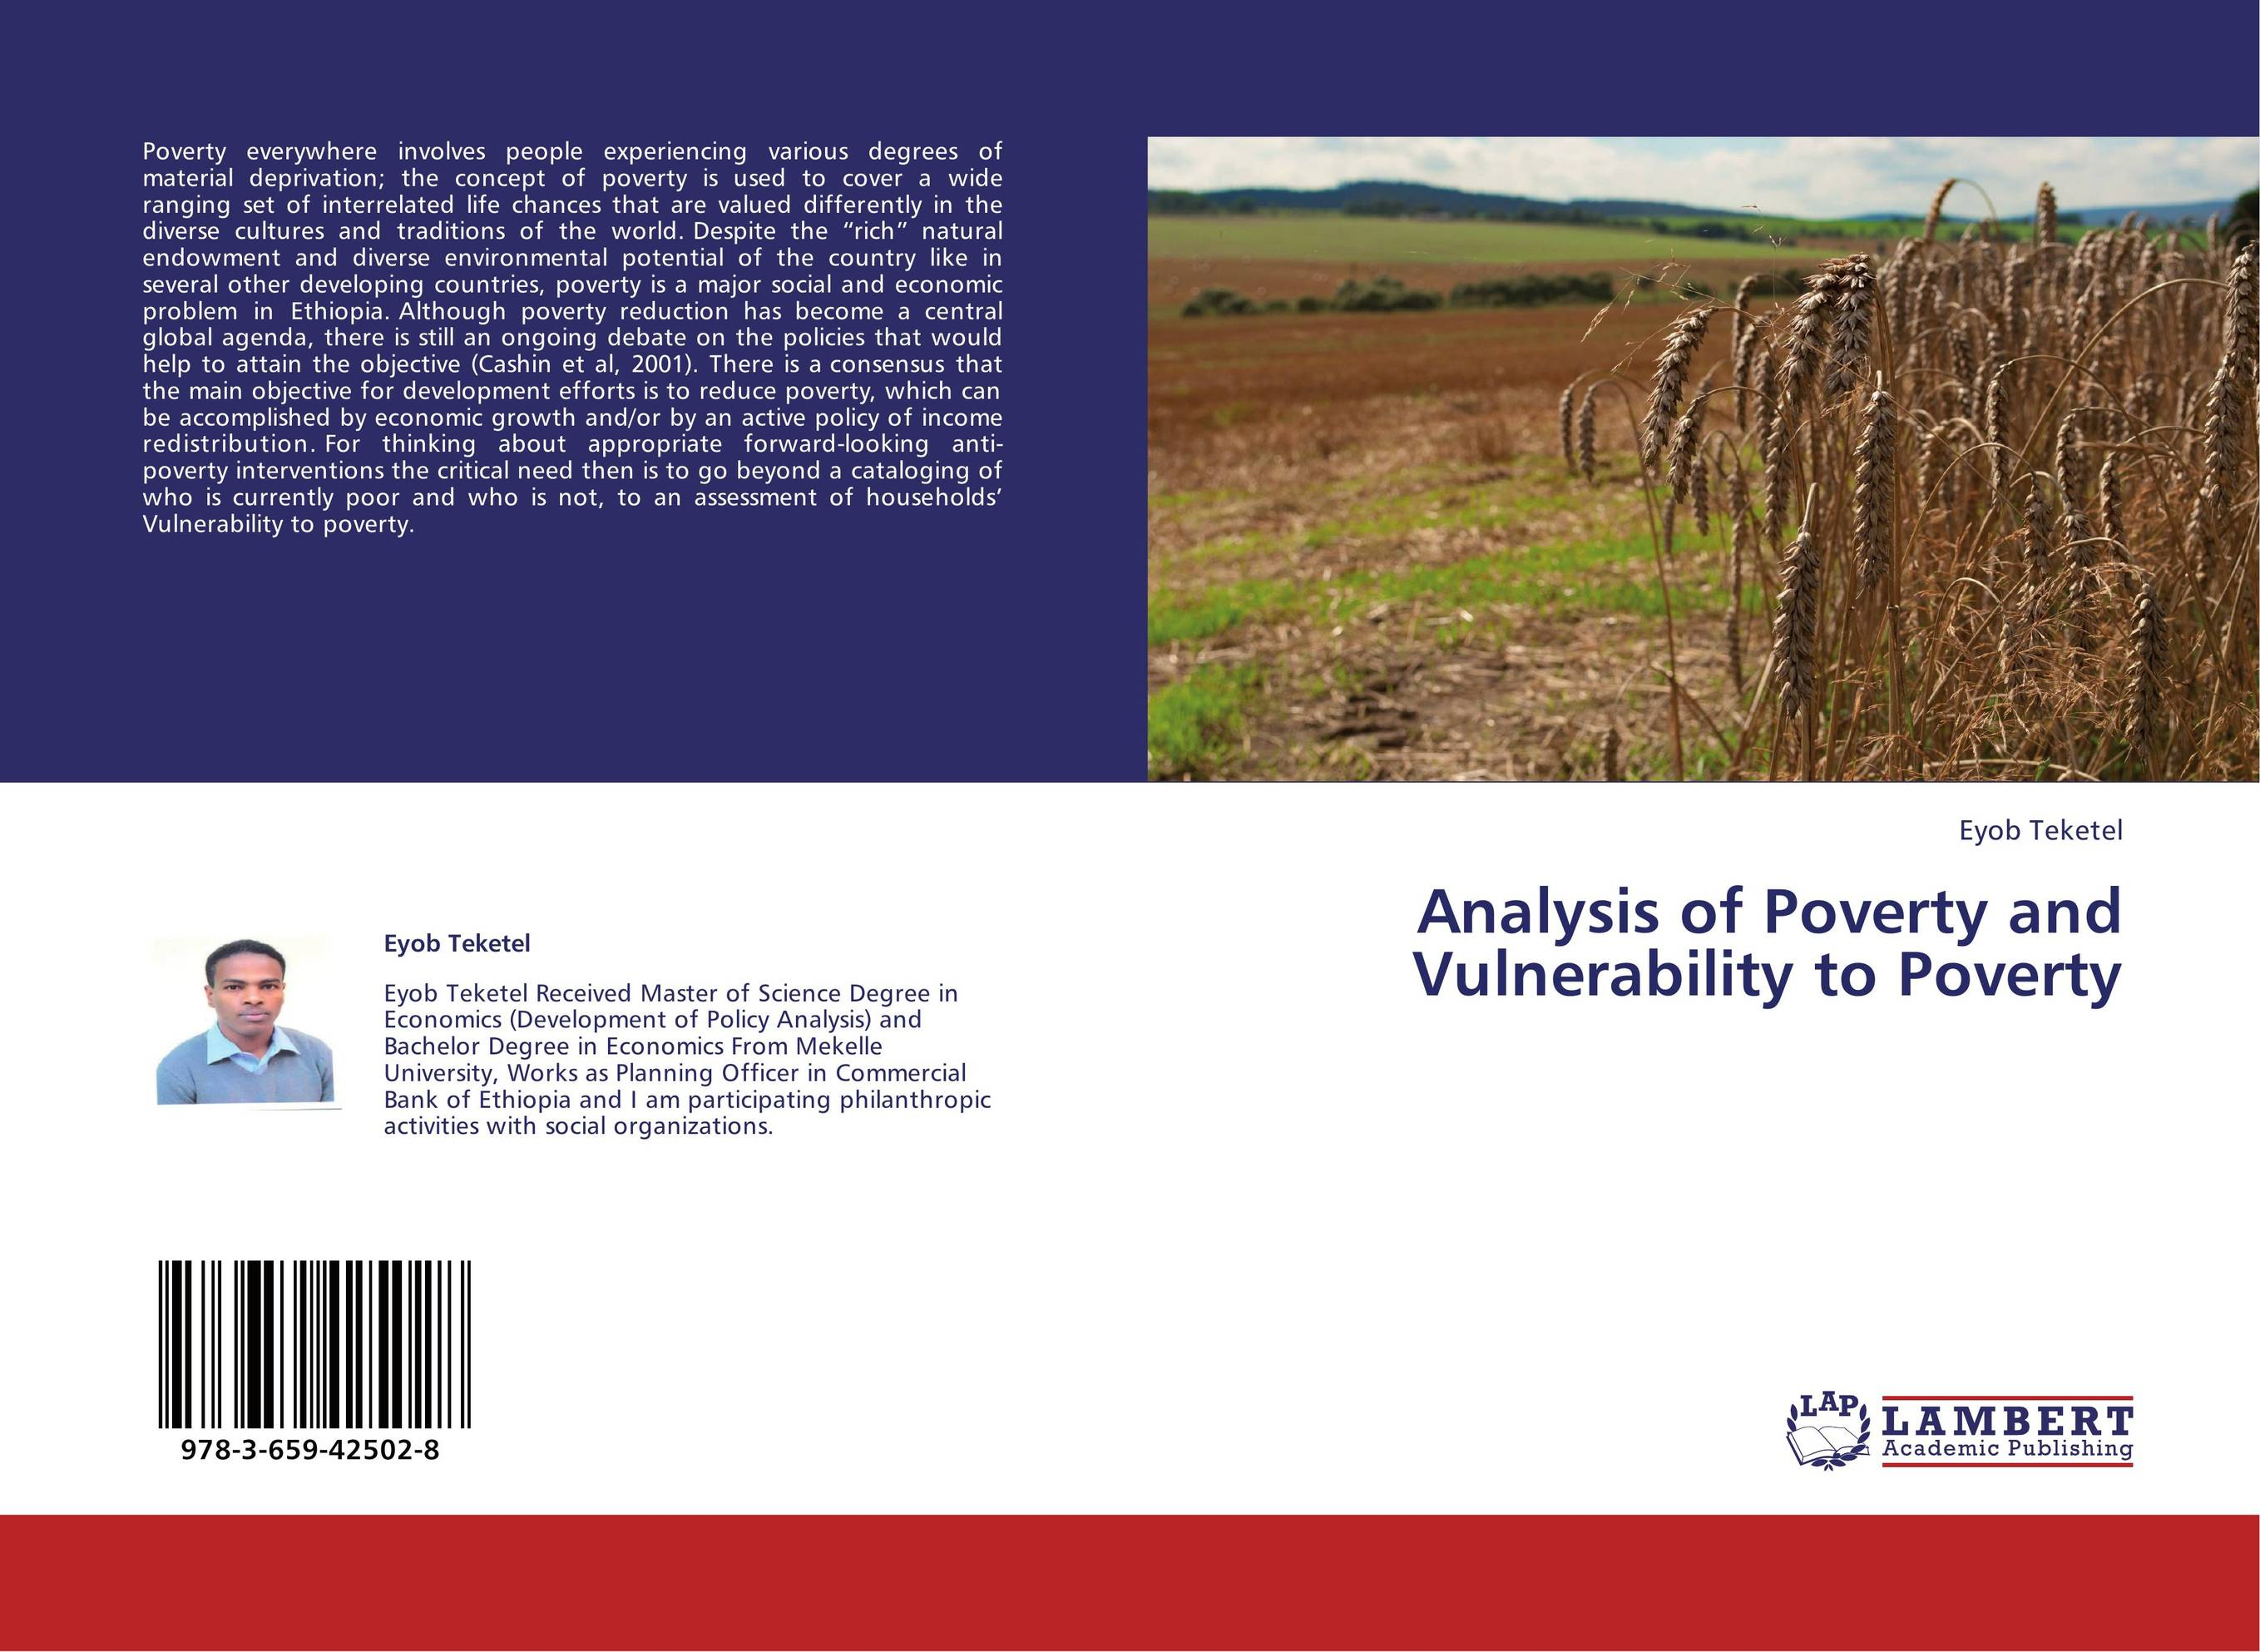 an analysis of world poverty and economic development Defining economic development through human development and standard of living principles analyzing access to social development constructs with explain gender inequality, what is causing it, and what the world is trying to do to address it understanding global extreme poverty and what is.